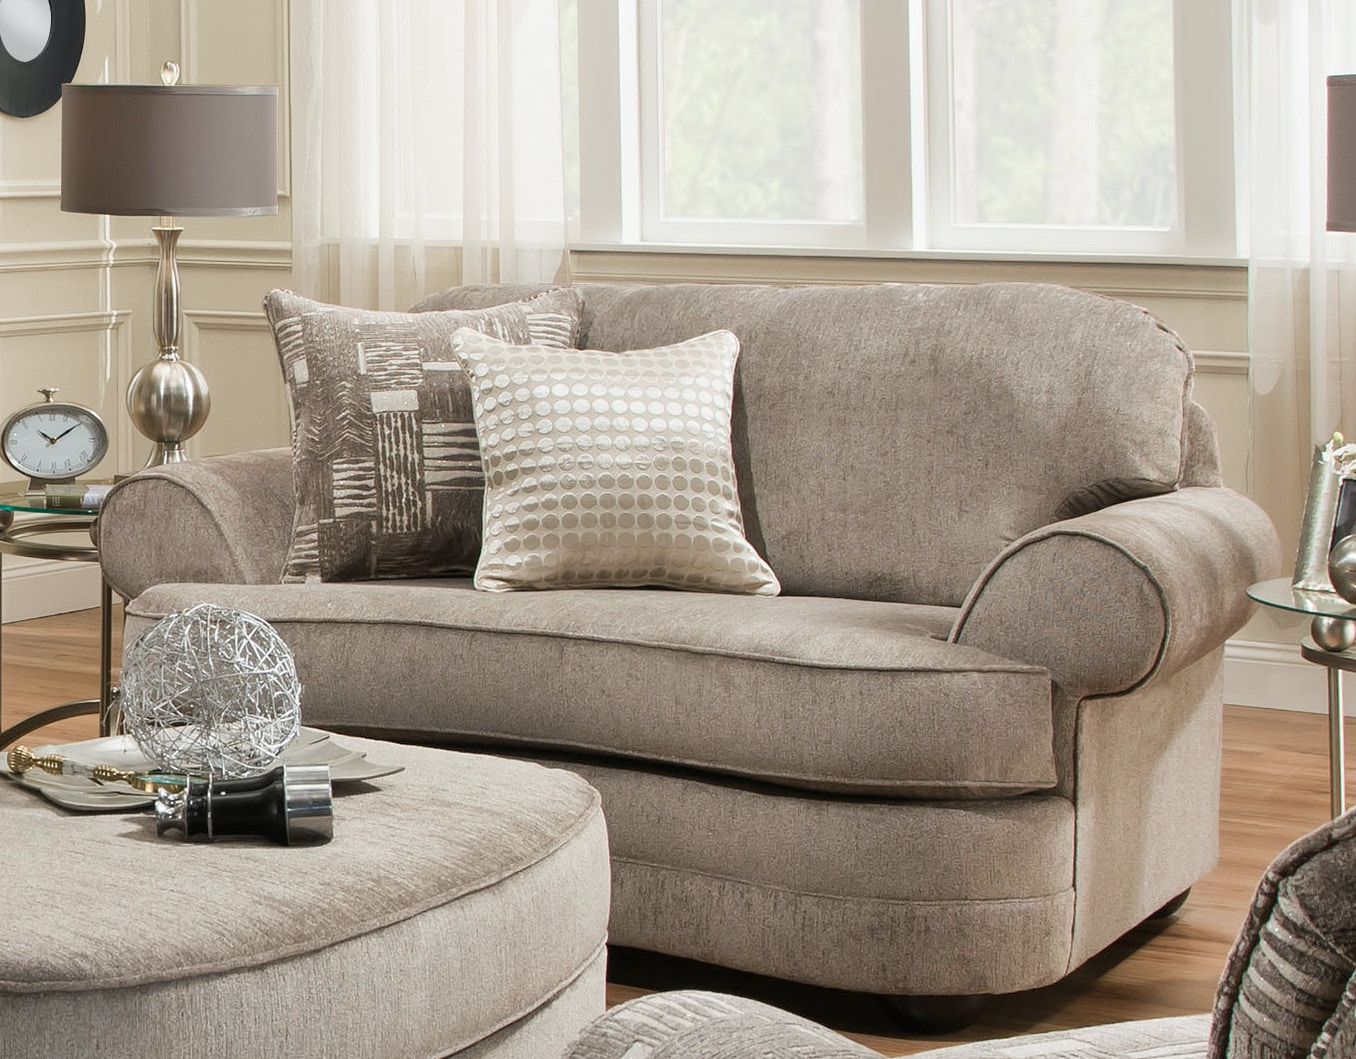 100 Simmons Furniture Store Near Me Discount Living Room